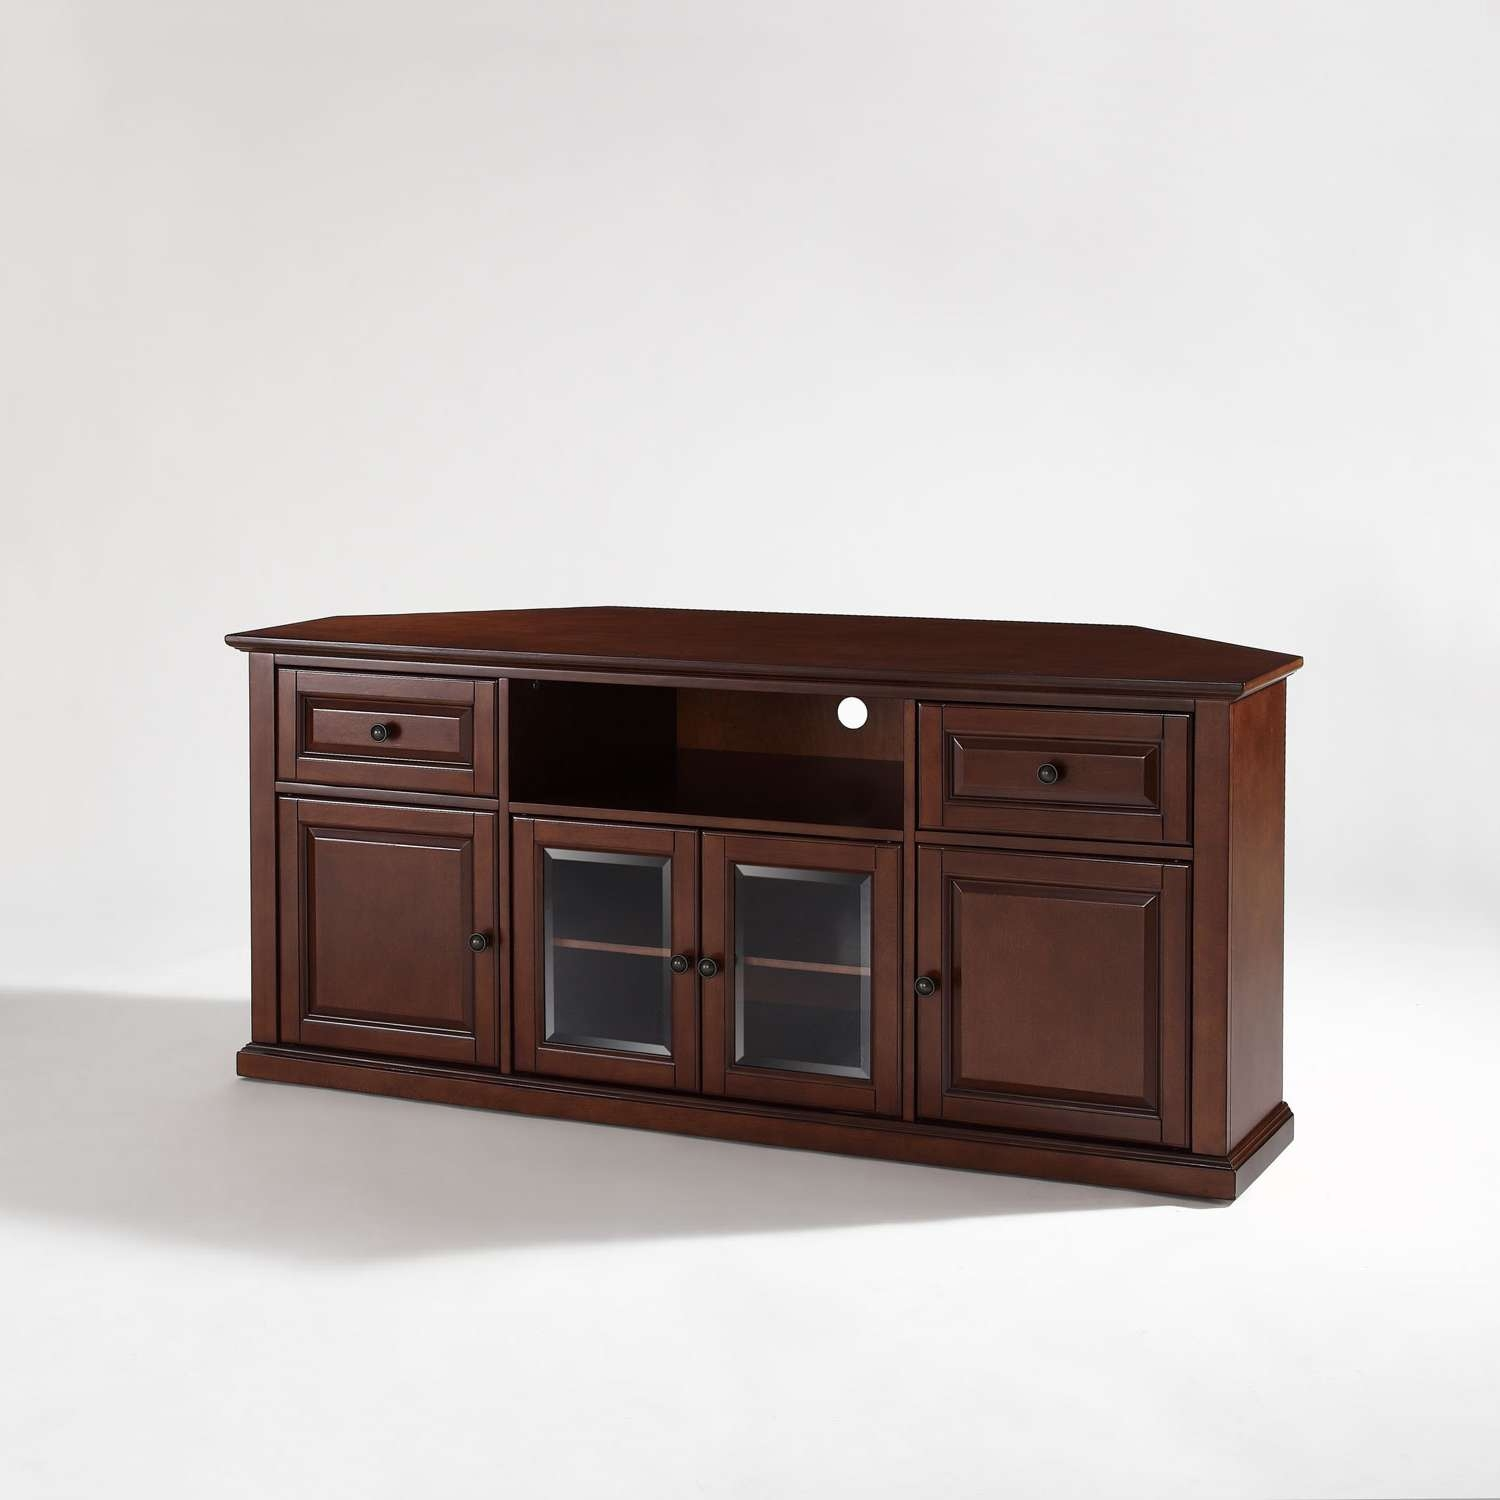 Corner Tv Cabinets Tv Stands And Cabinets | Bellacor Intended For Tv Stands With Rounded Corners (View 9 of 15)